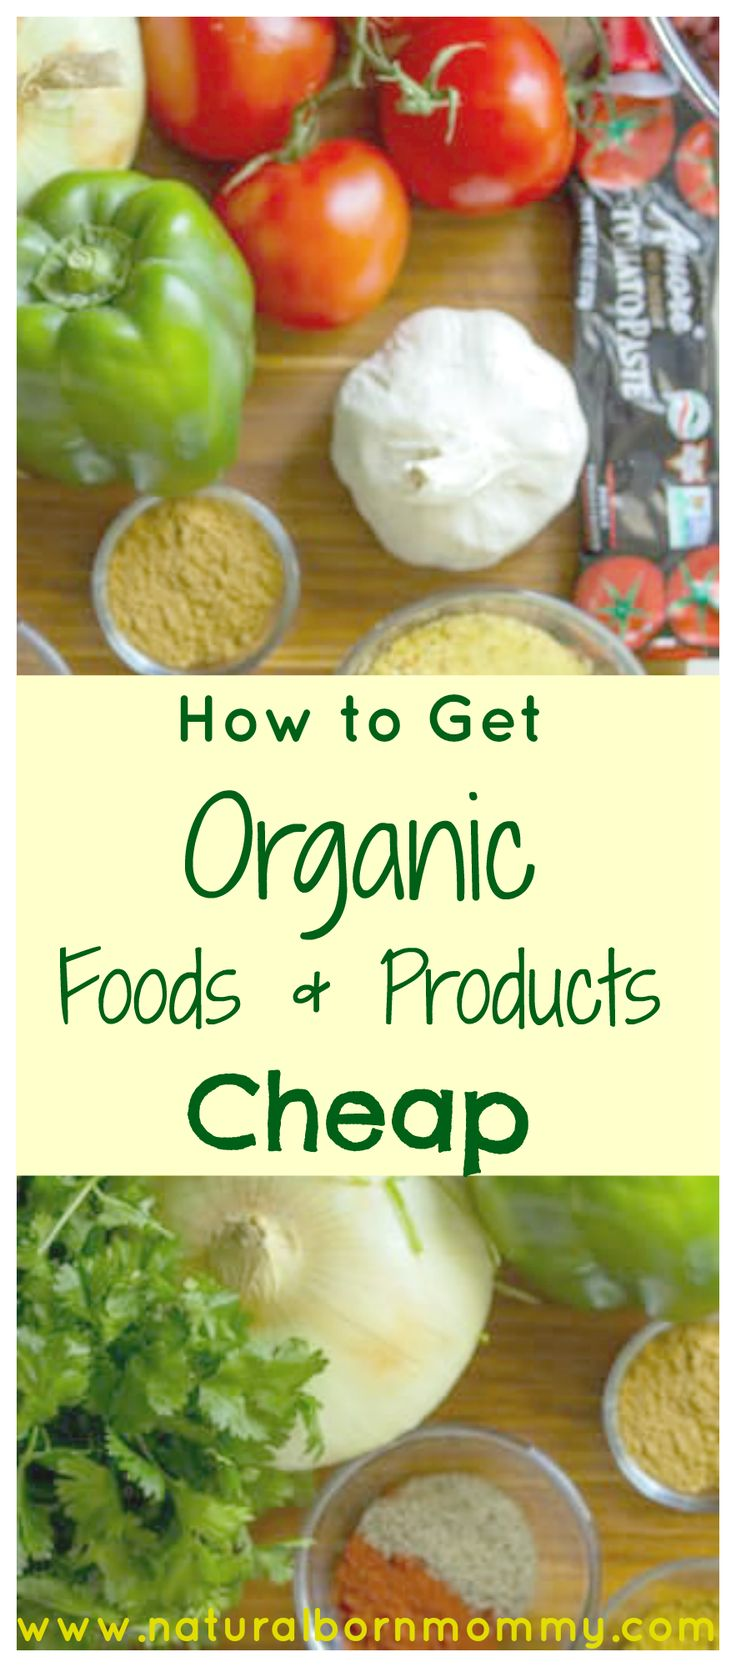 Do you want to eat wholesome, unprocessed, non-GMO, organic food or provide your family with natural, chemical-free products but can't afford to? It can be hard getting these items at an inexpensive cost, and coupons for organic products can be difficult to find. Here are 6 tips to getting organic foods and products cheap...